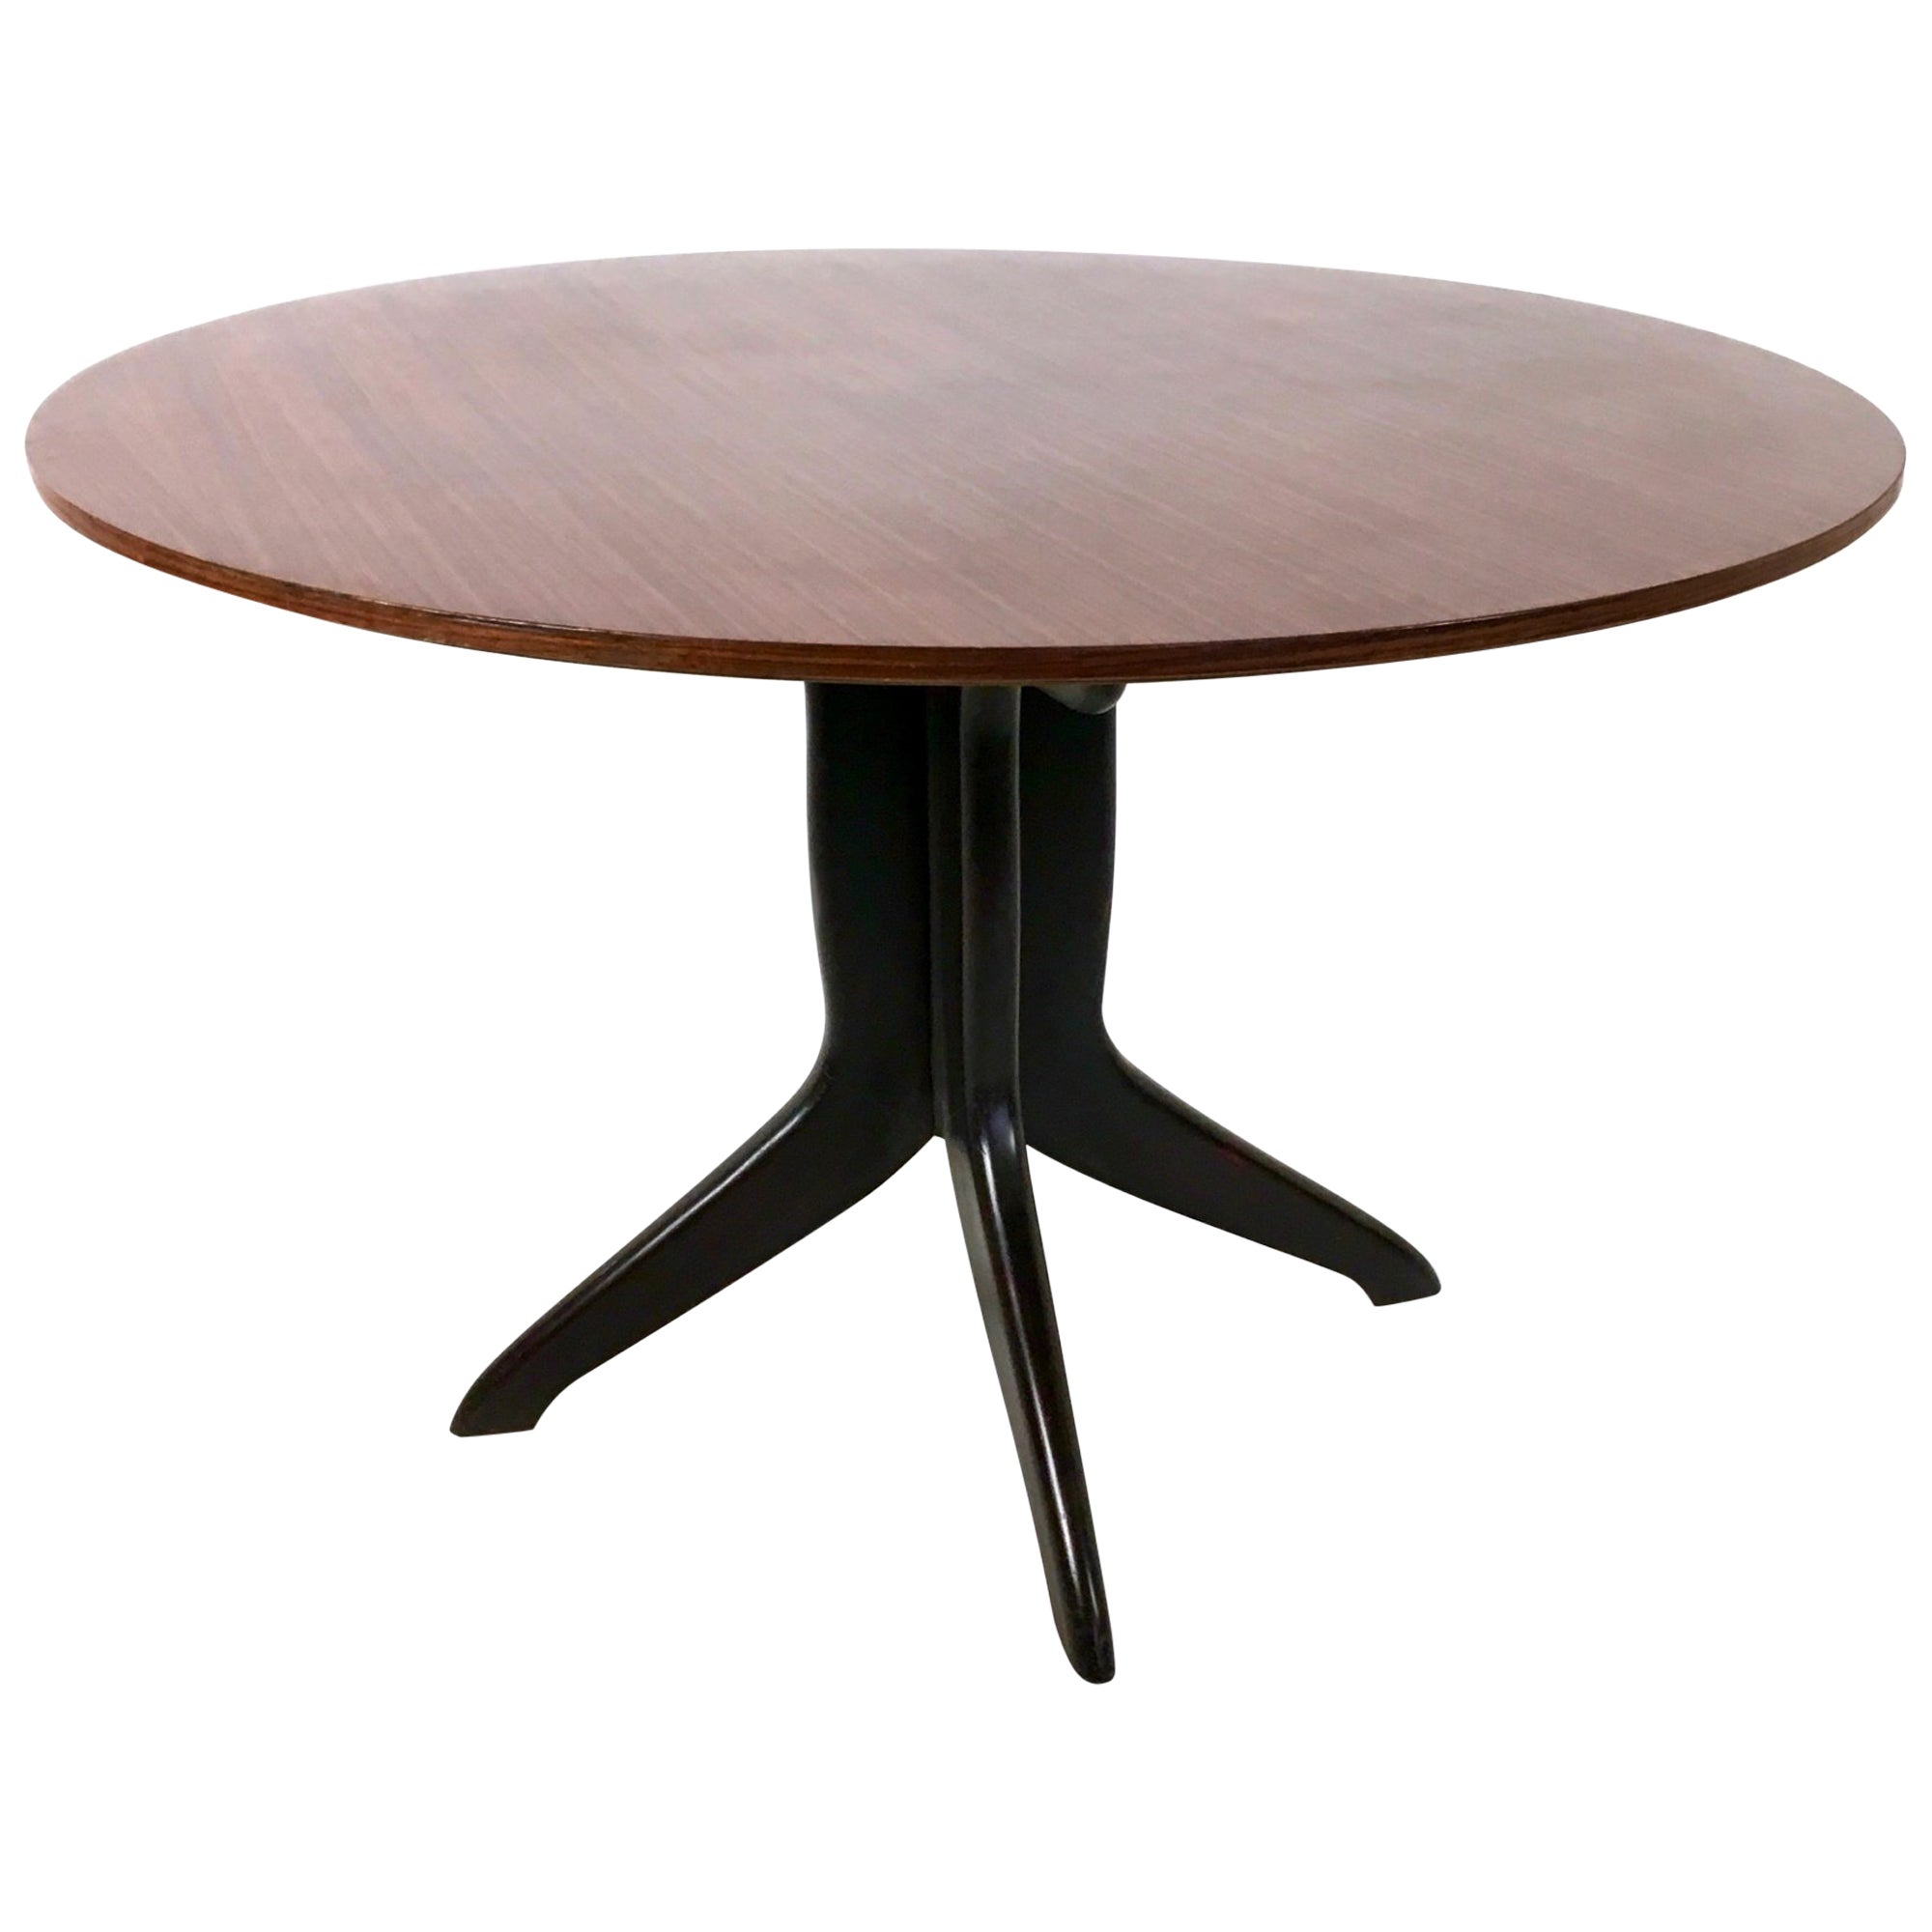 Round Wood and Beech Dining Table in the Style of Ico Parisi, Italy, 1950s